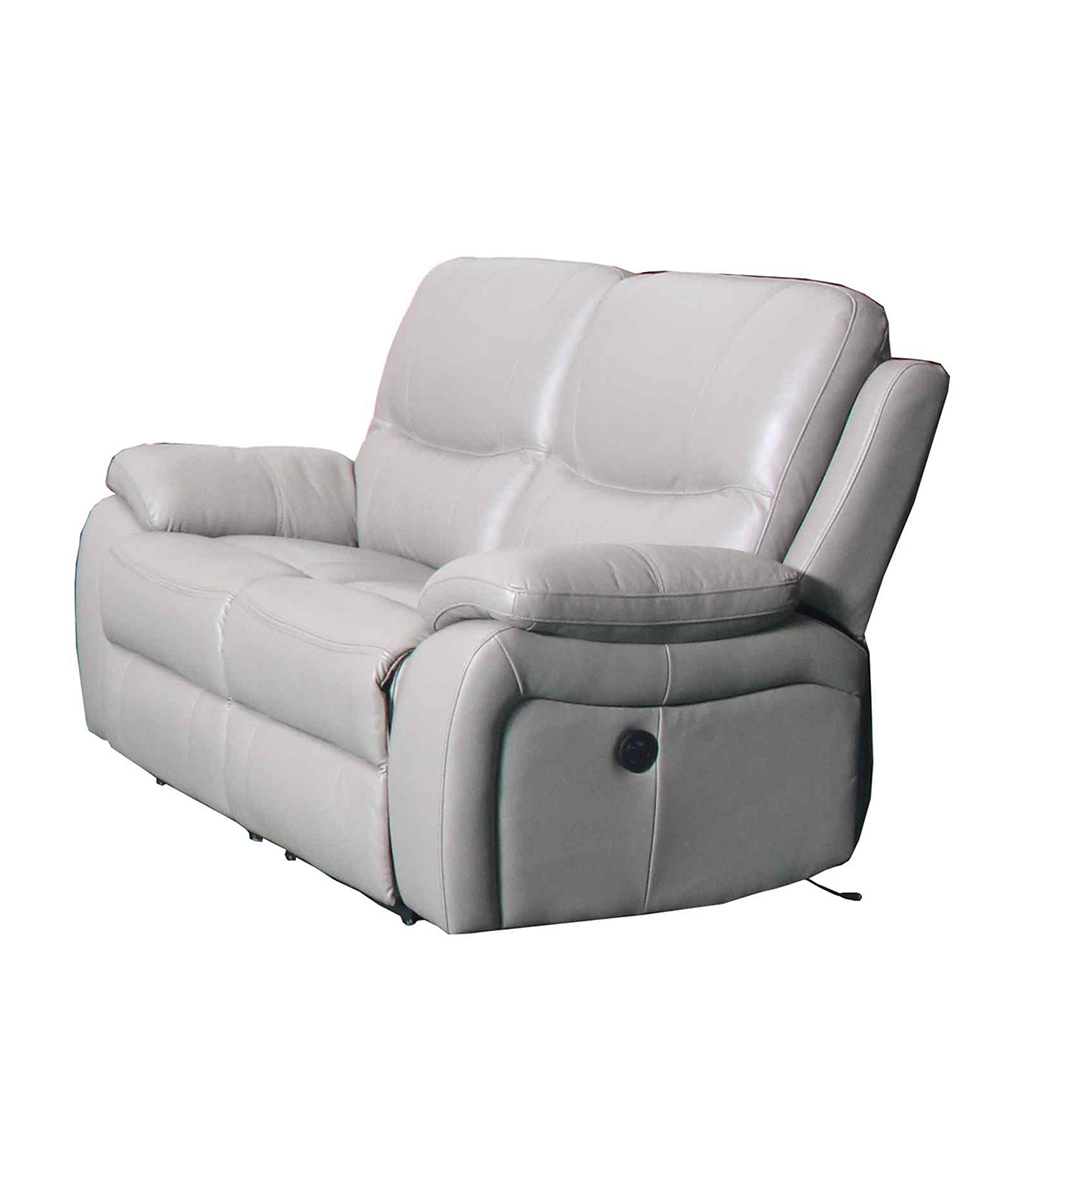 Barcalounger Laguna Power Reclining Loveseat - Cashmere White/Leather Match